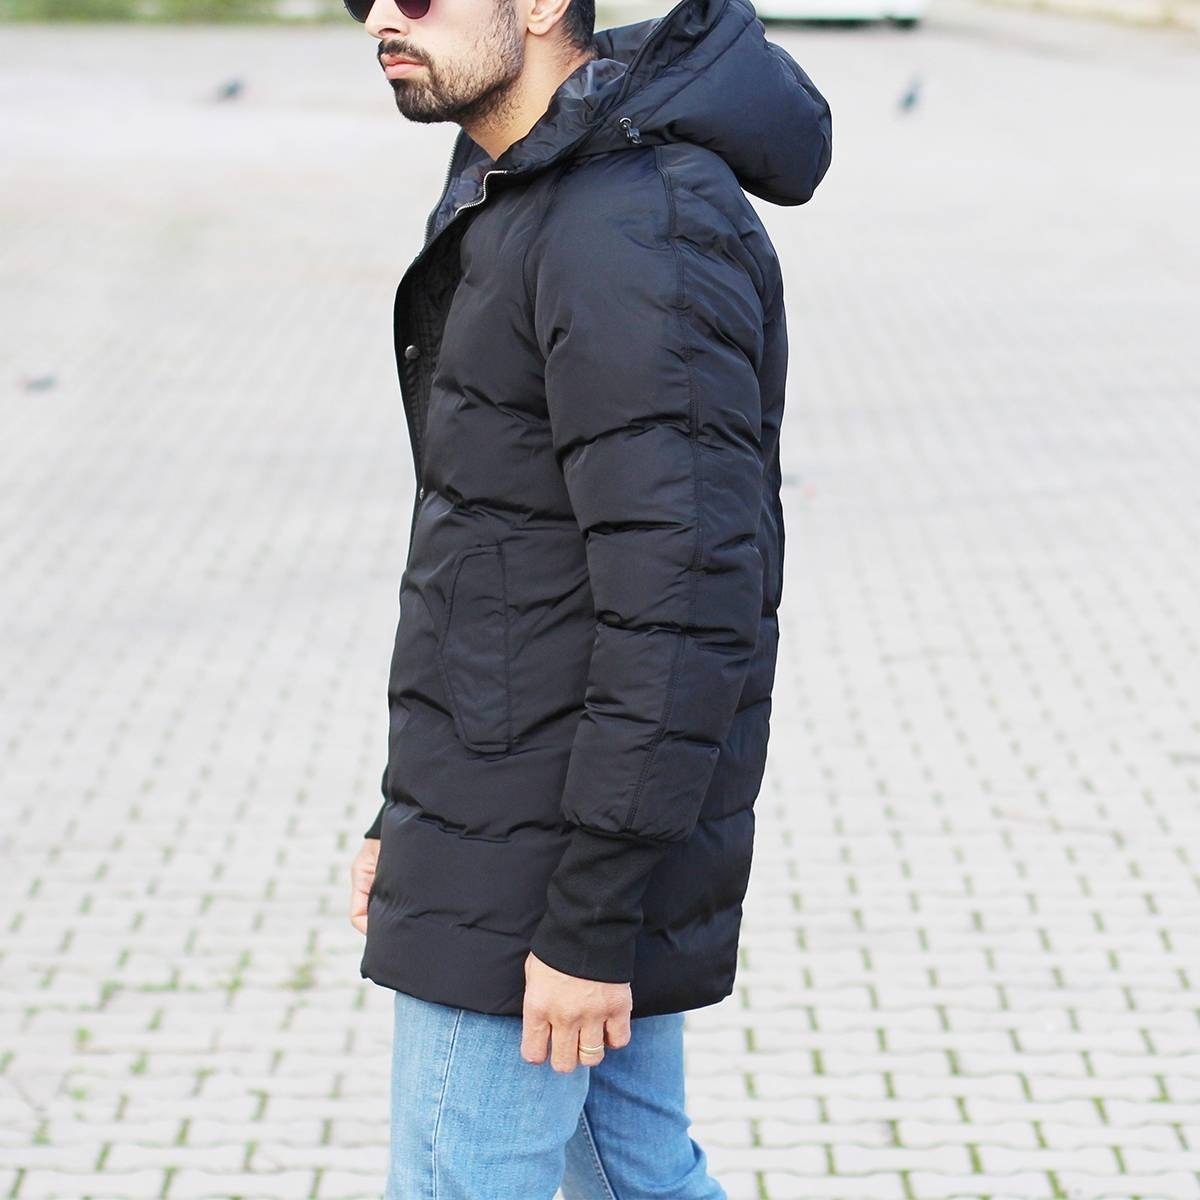 Men's Hooded Puffer Winter Coat In Black Mv Premium Brand - 4